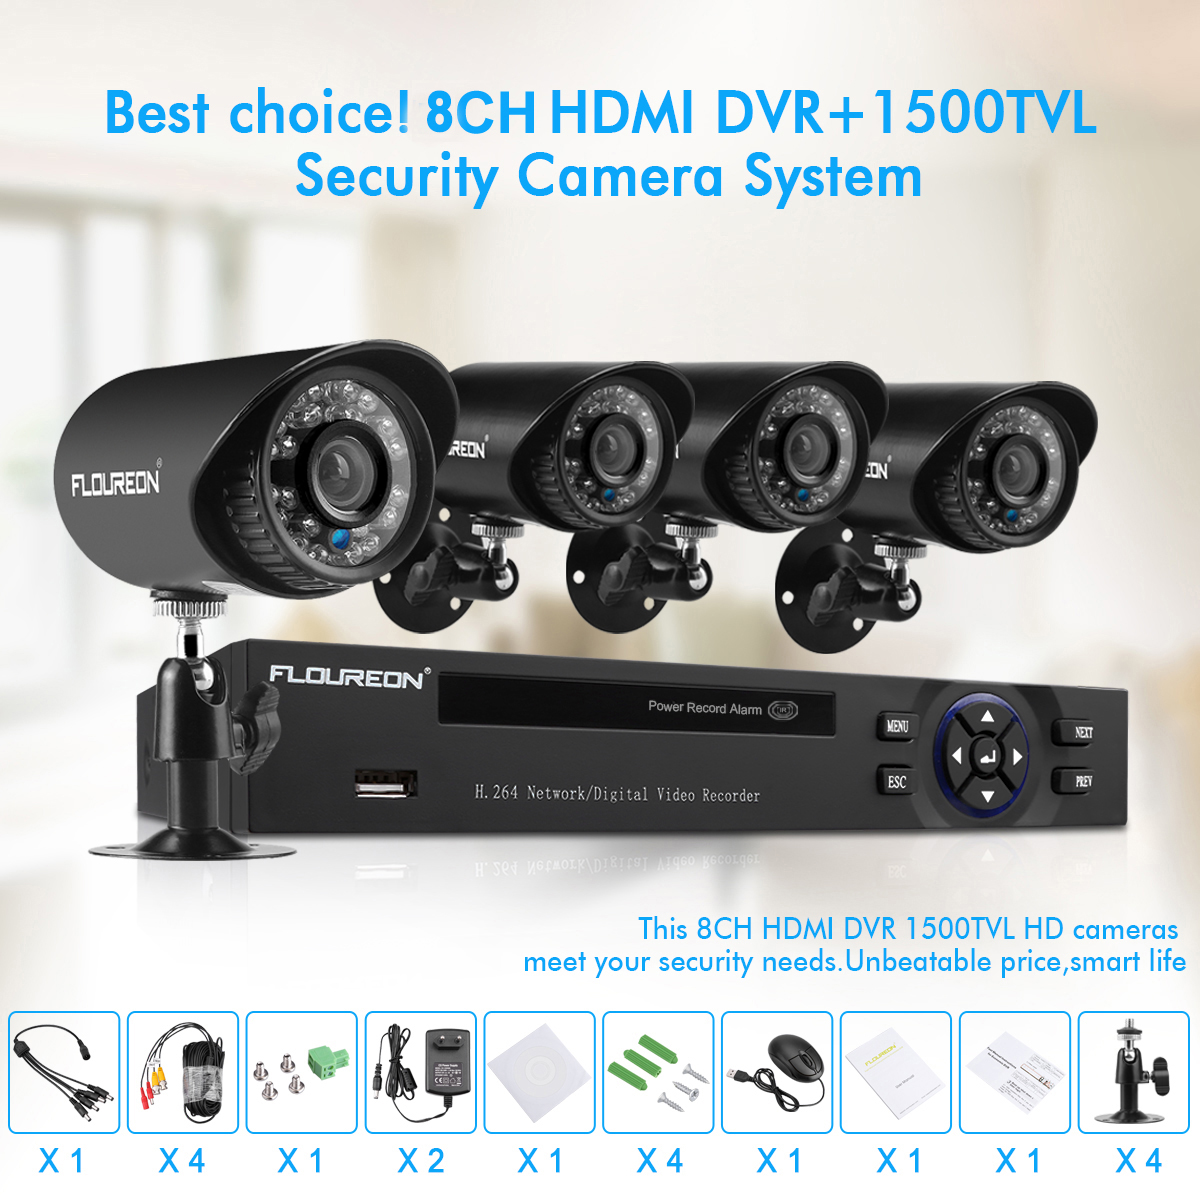 Floureon 8-Channel HD 1080N Security Camera System DVR and (4) 1 0MP  Indoor/Outdoor Weatherproof Bullet Cameras with IR Night Vision LEDs,  Remote